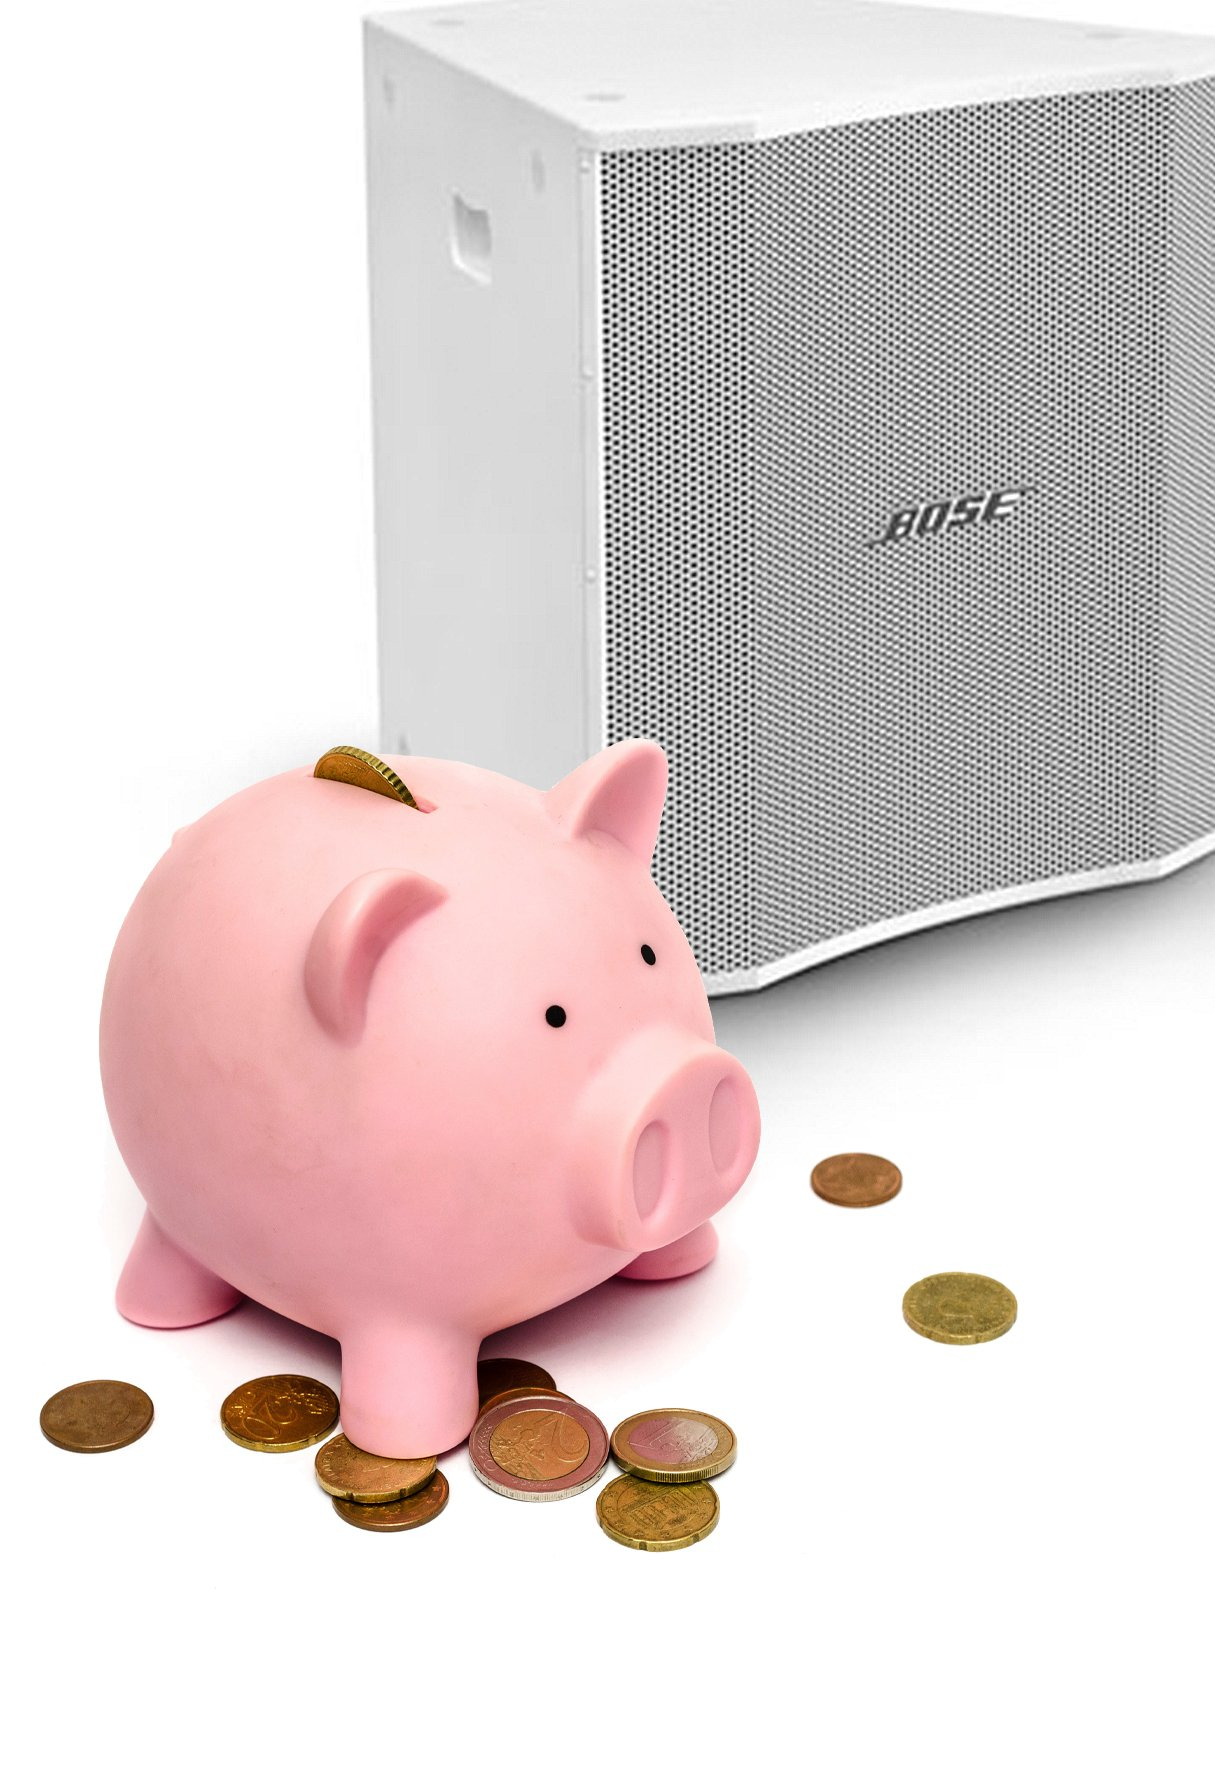 Budgeting for Audio